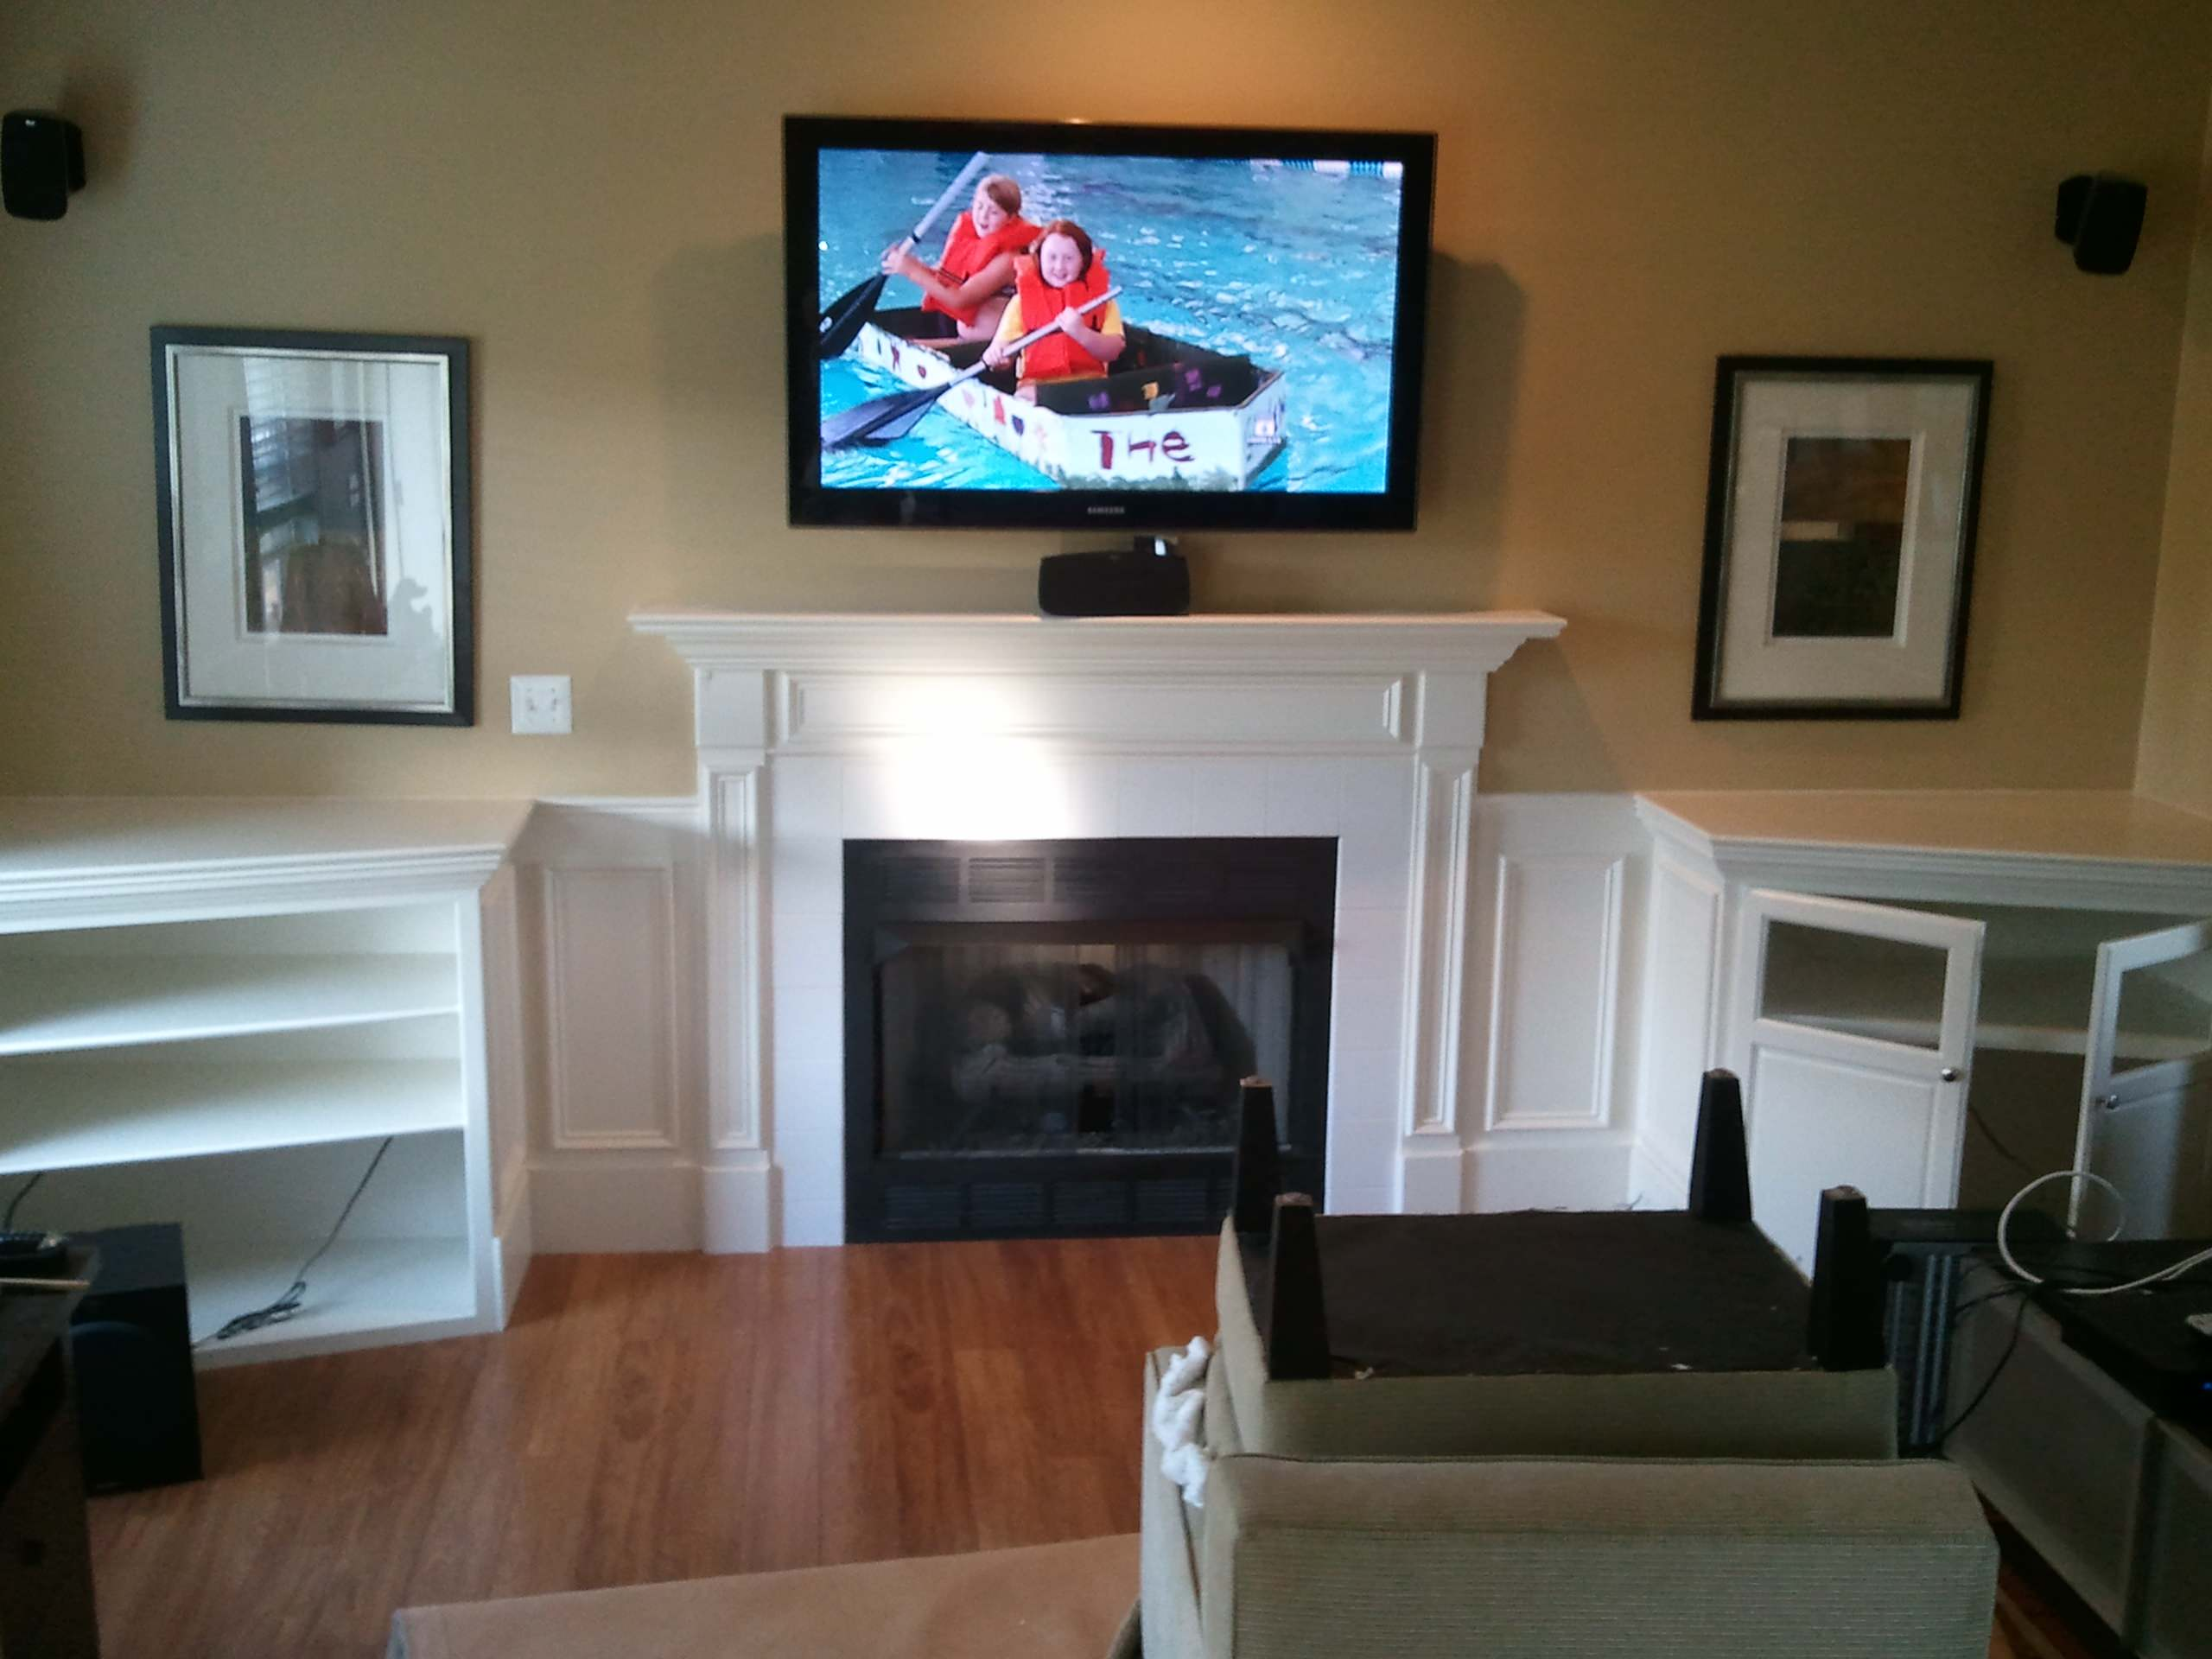 Built In Shelving and Cabinets To Hide Electronics and Surround Fireplace